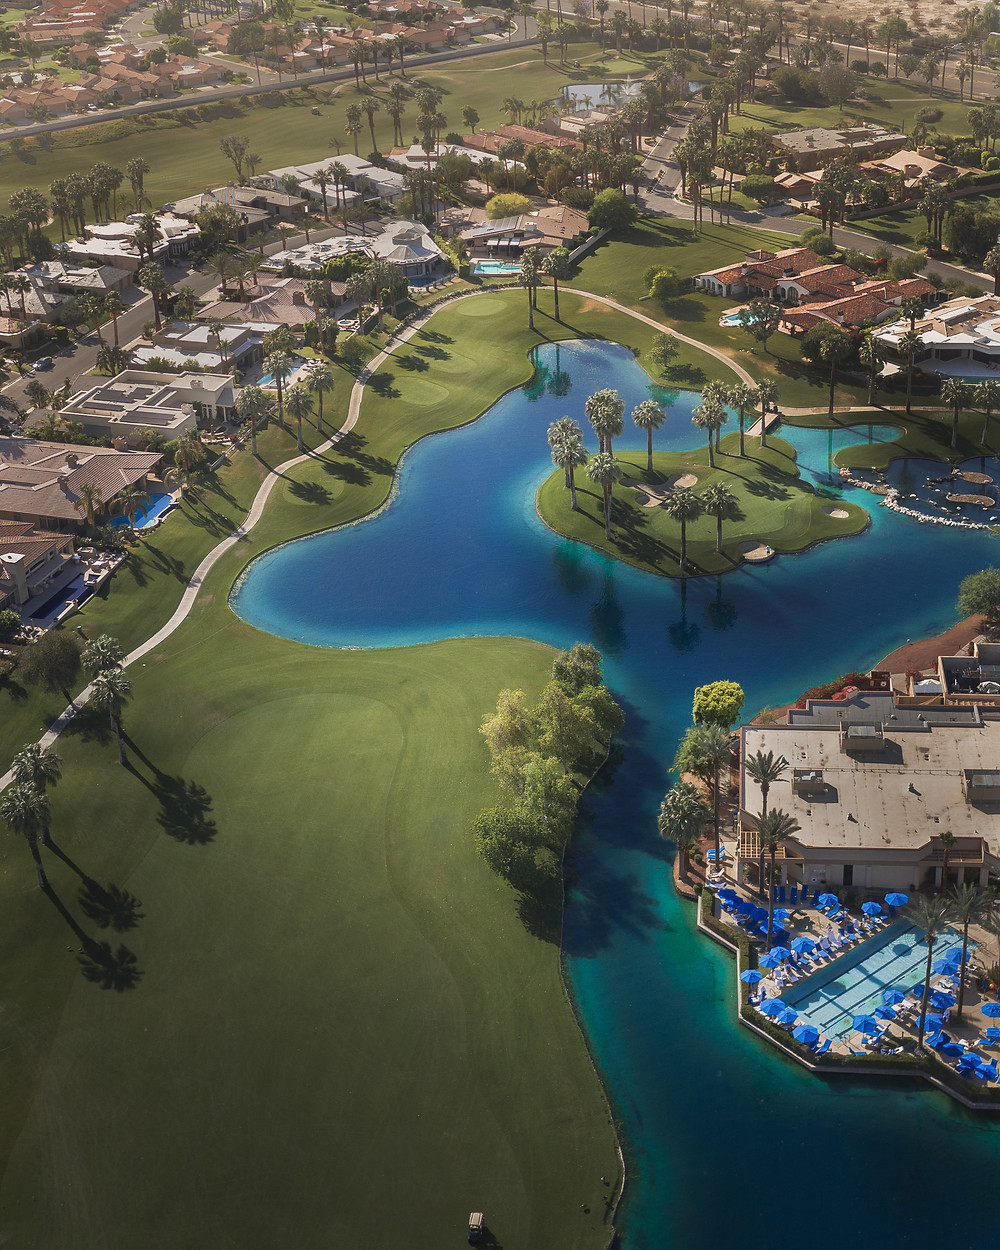 Aerial view of a pristine green golf course and aqua blue surrounding waters at the JW Marriott Desert Springs